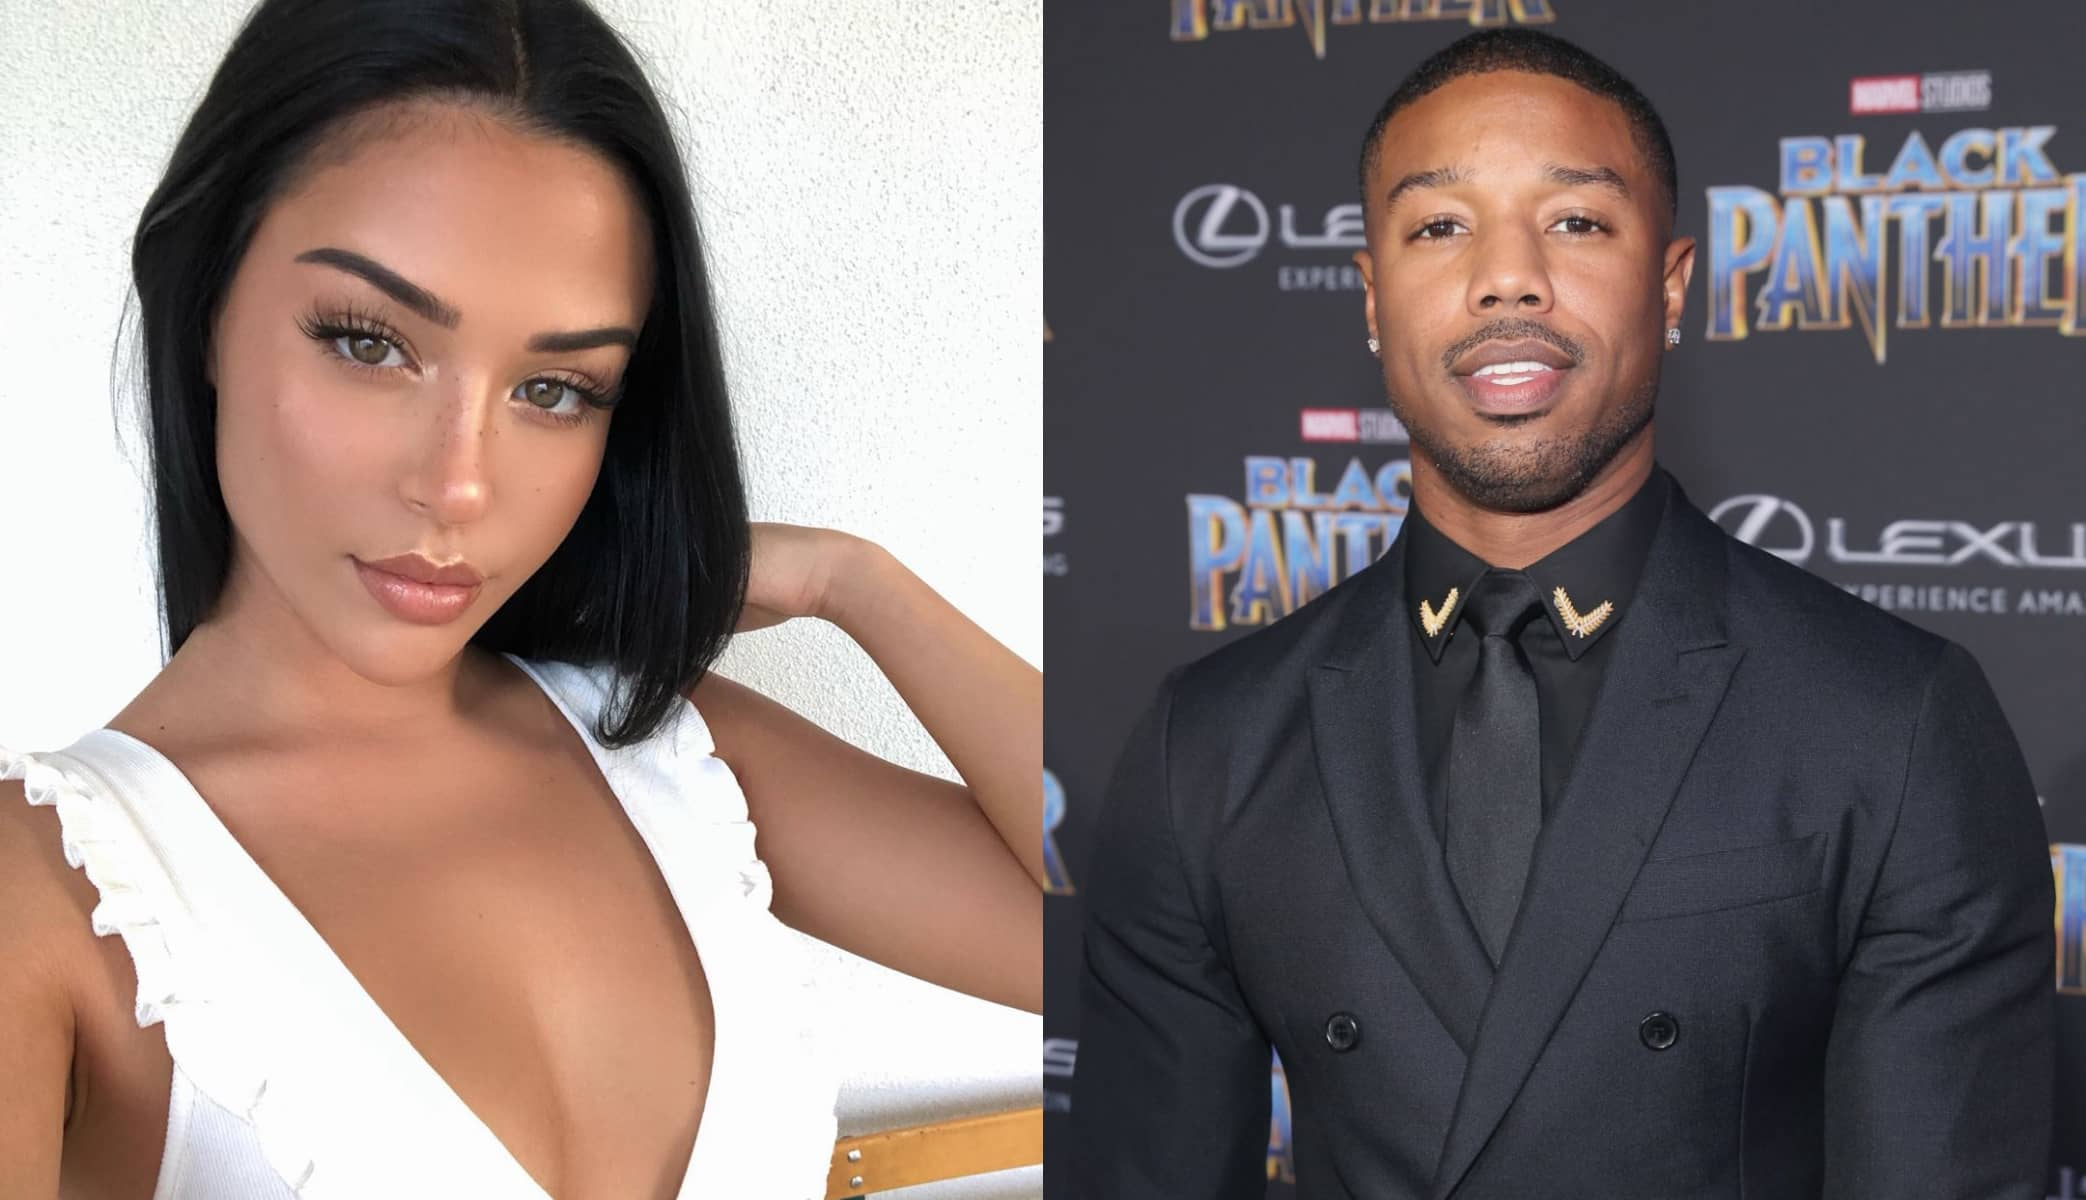 Ashlyn Castro and Michael B. Jordan